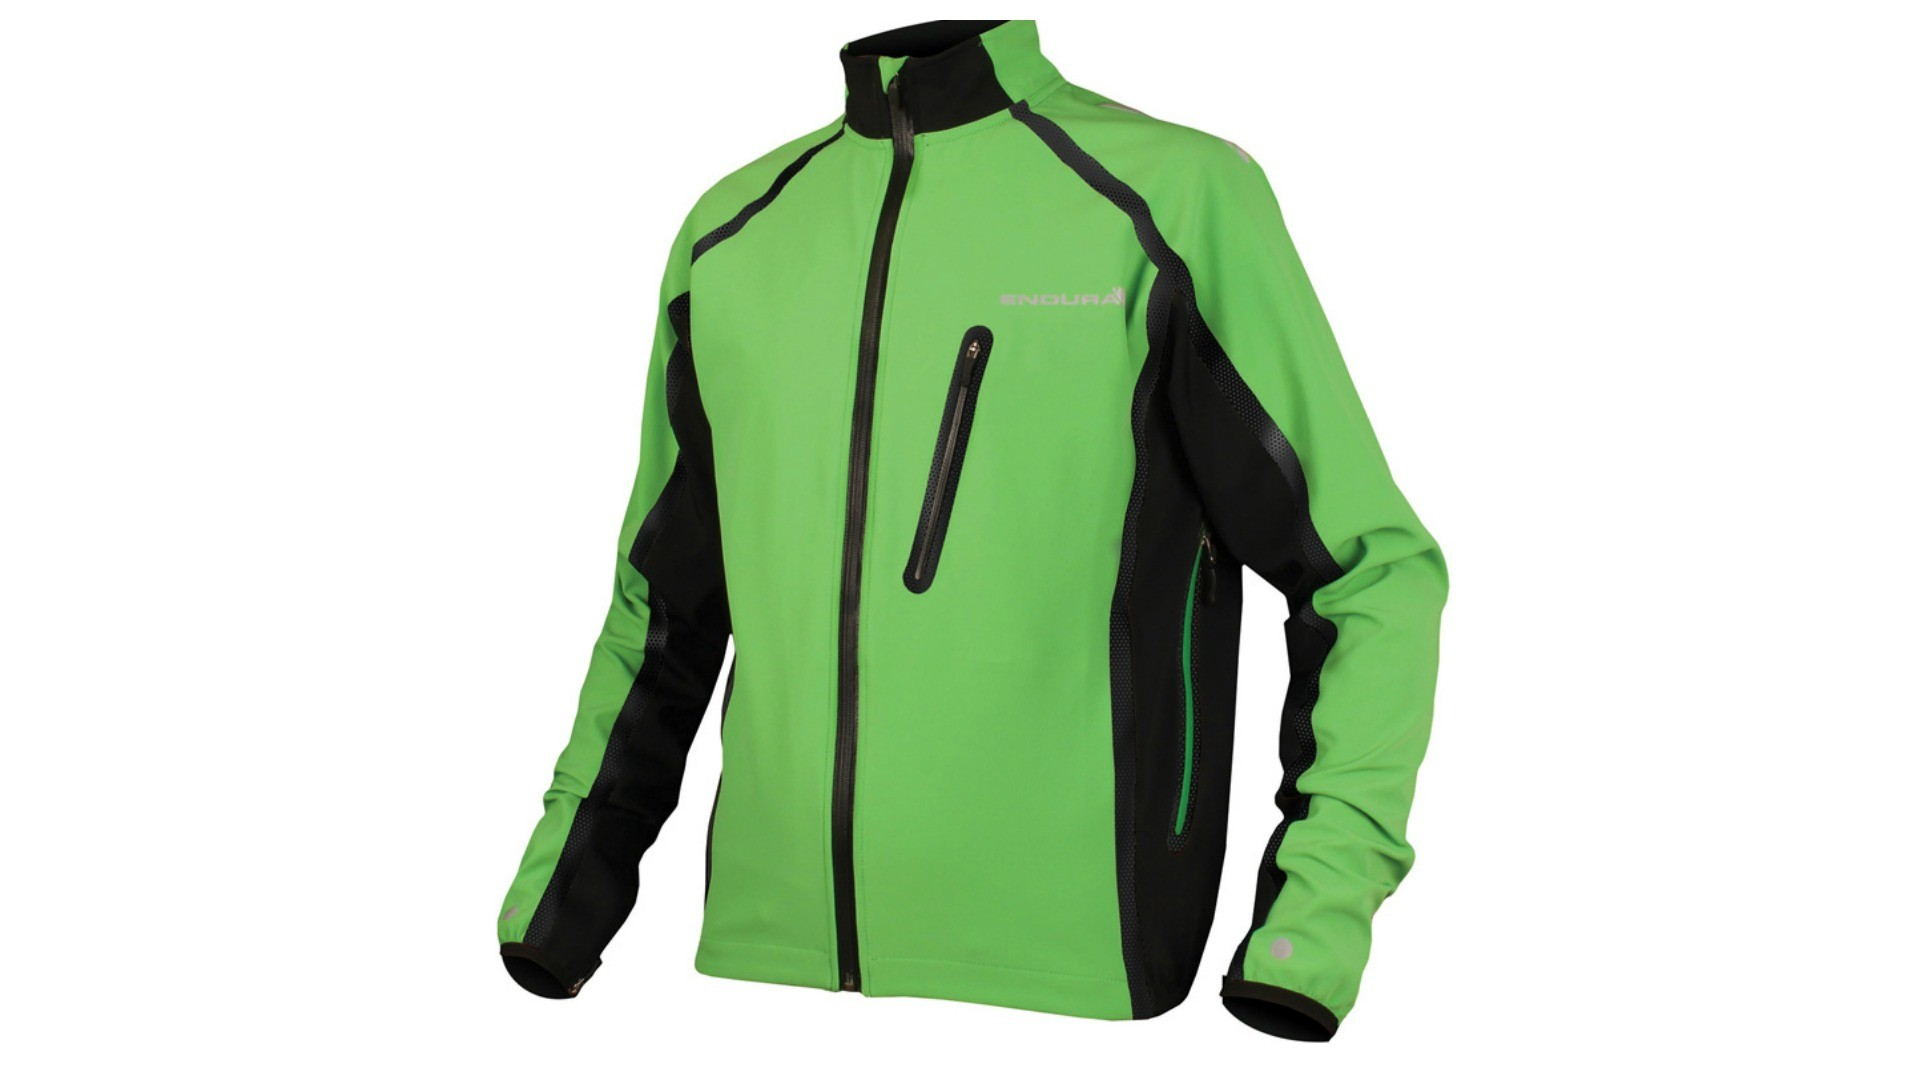 Softshell jackets are ideal for damp and warm conditions